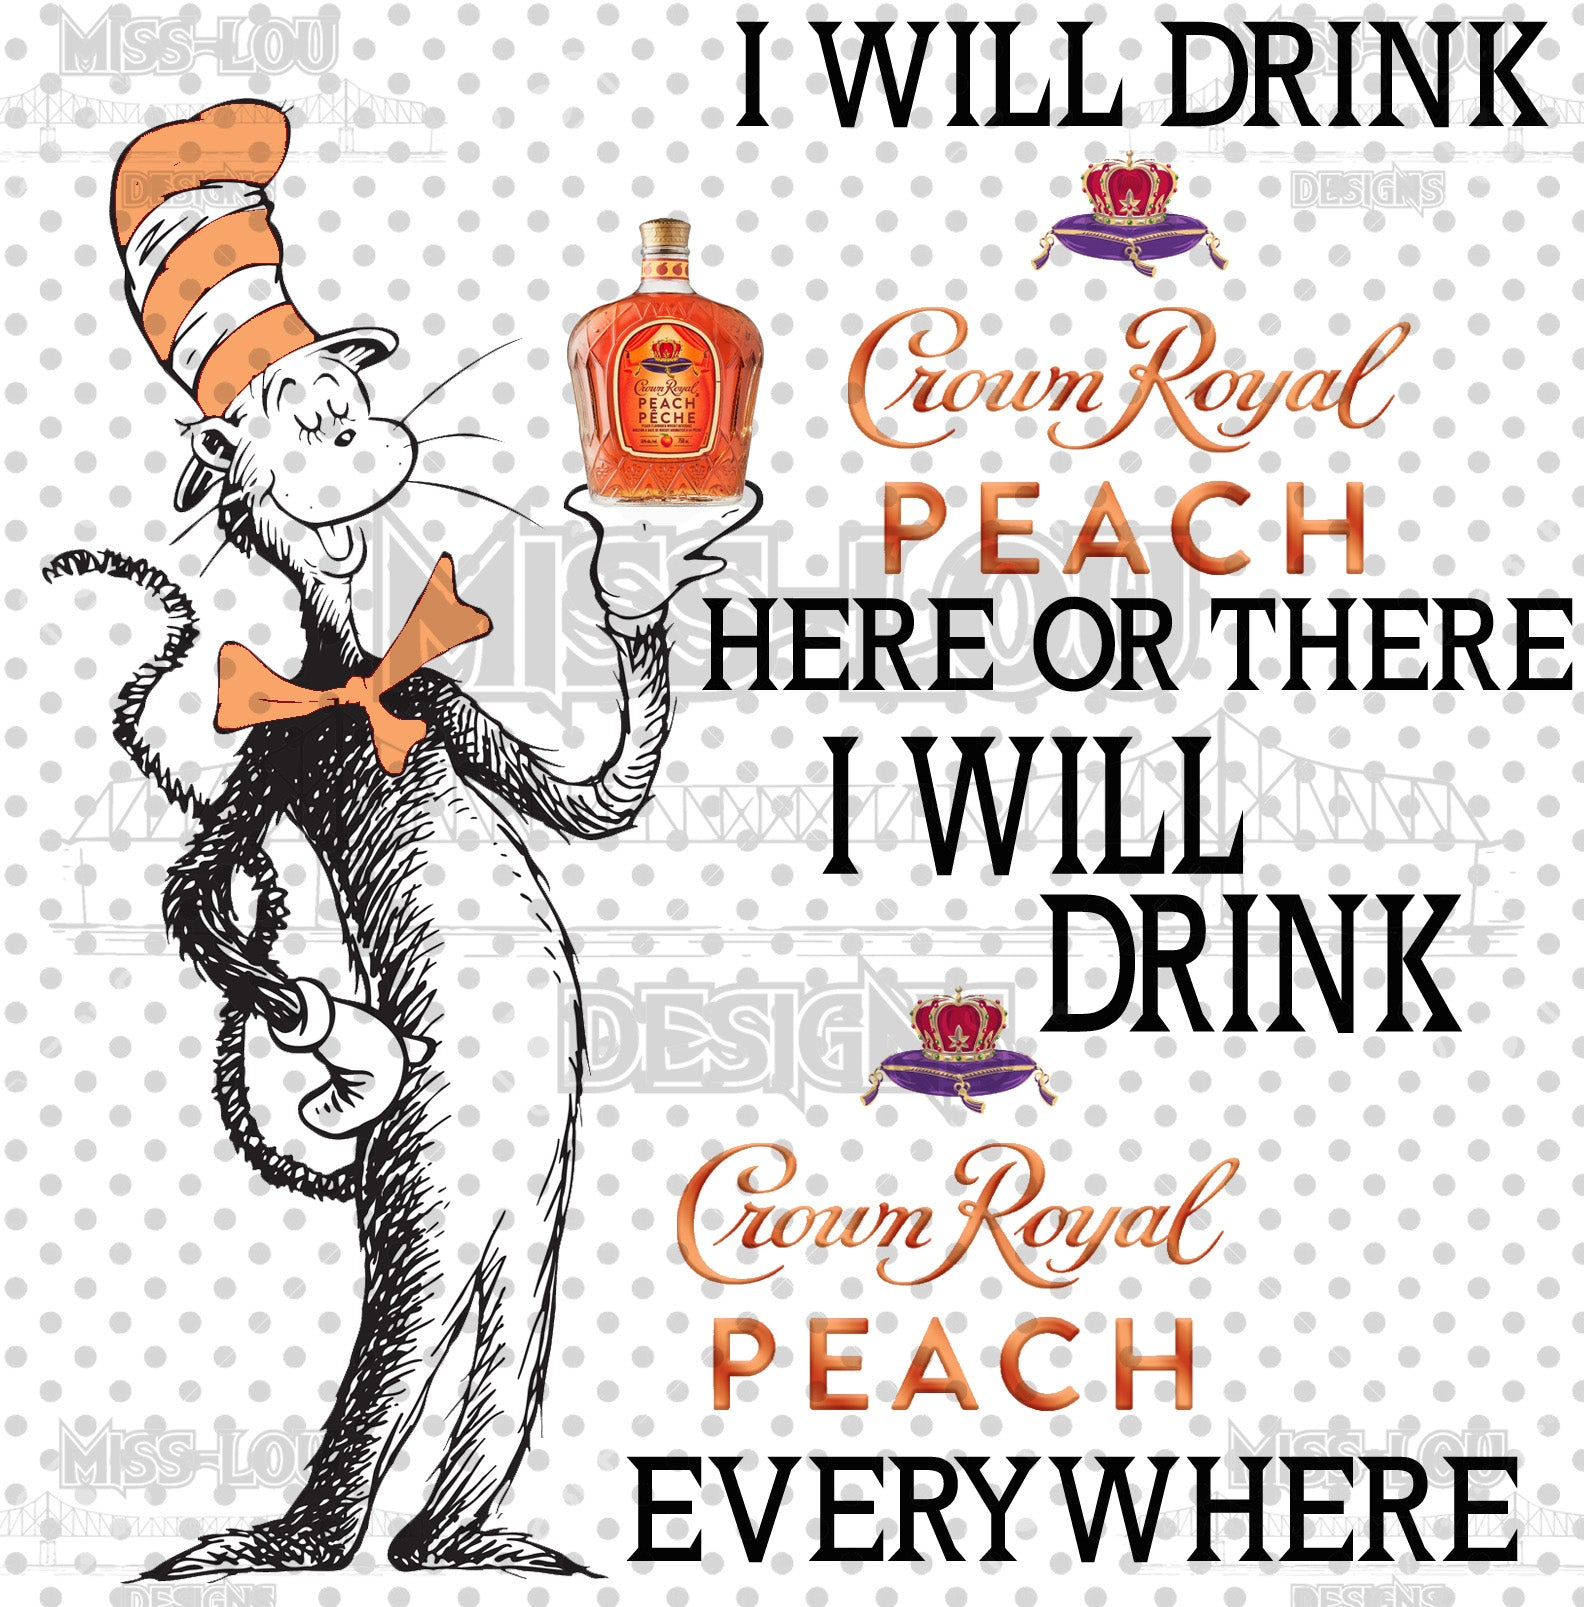 Cat In The Hat Crown Royal Peach Waterslide